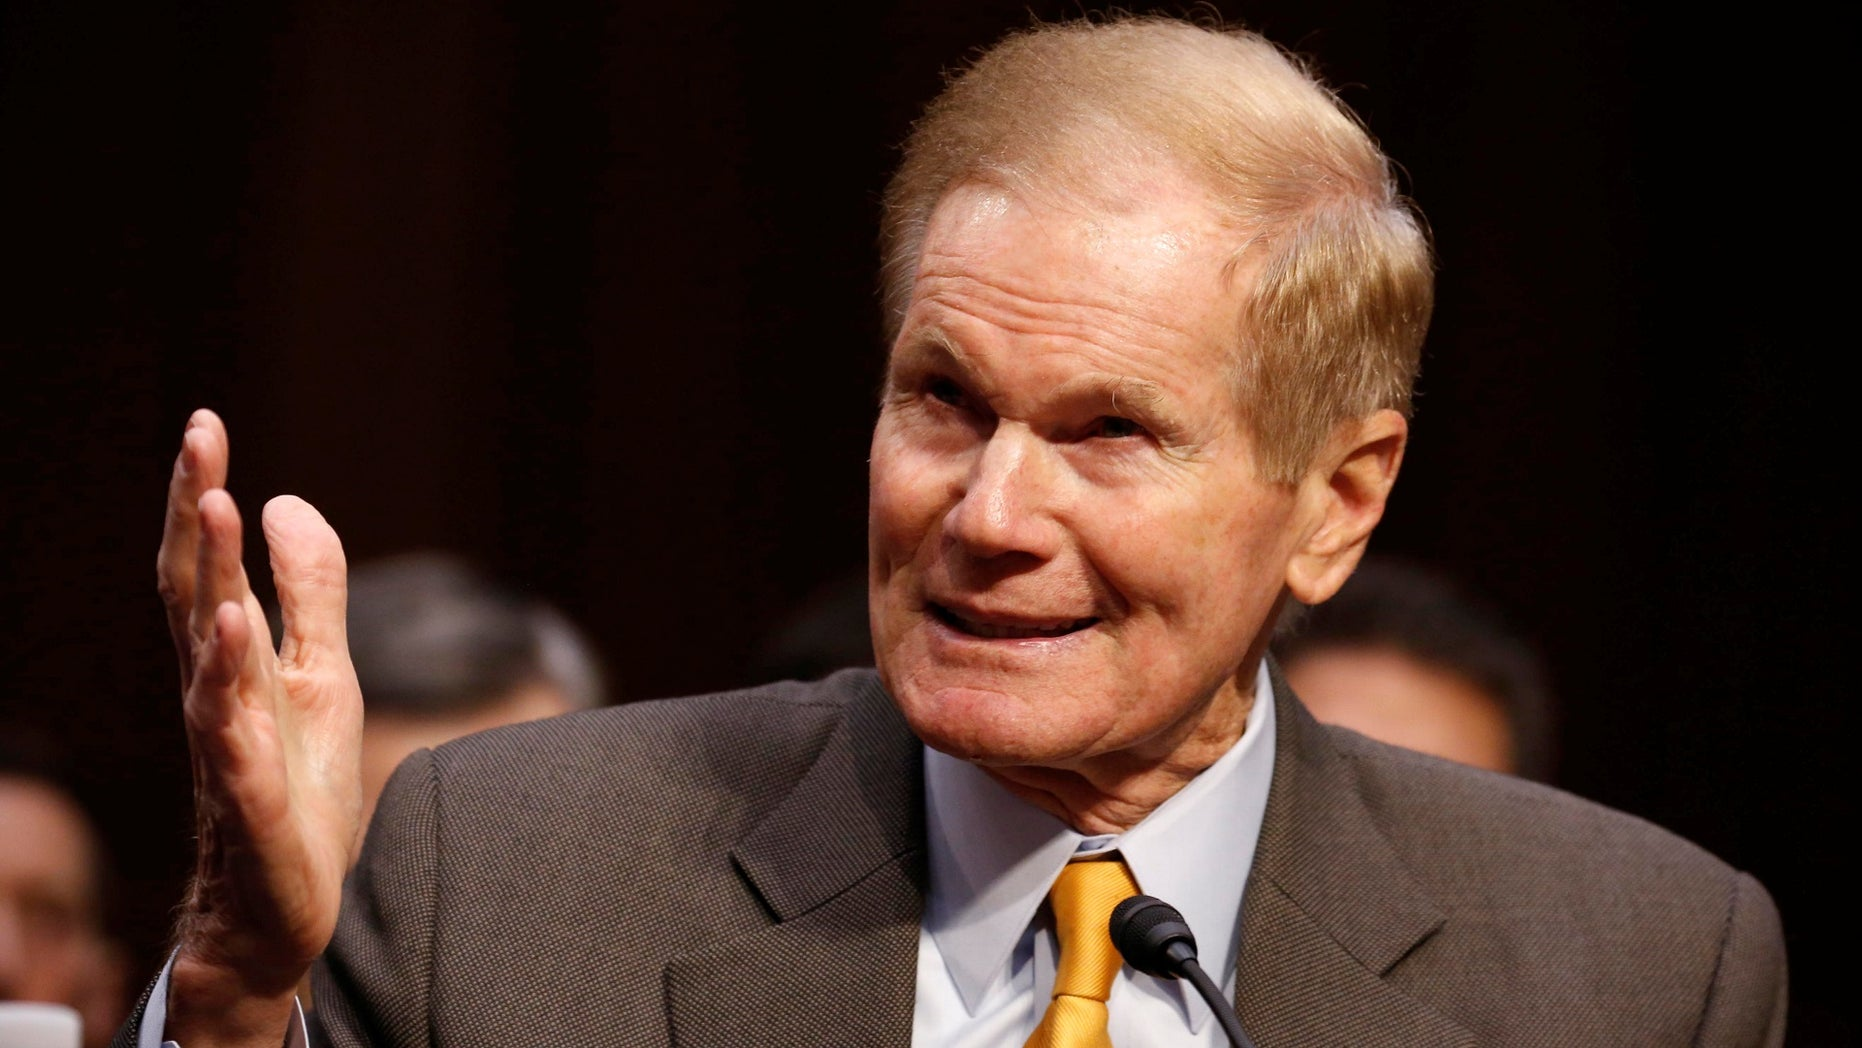 Democratic Sen. Bill Nelson compared the political environment of the United States to that of Rwanda before its 1994 genocide that left more than 500,000 dead.